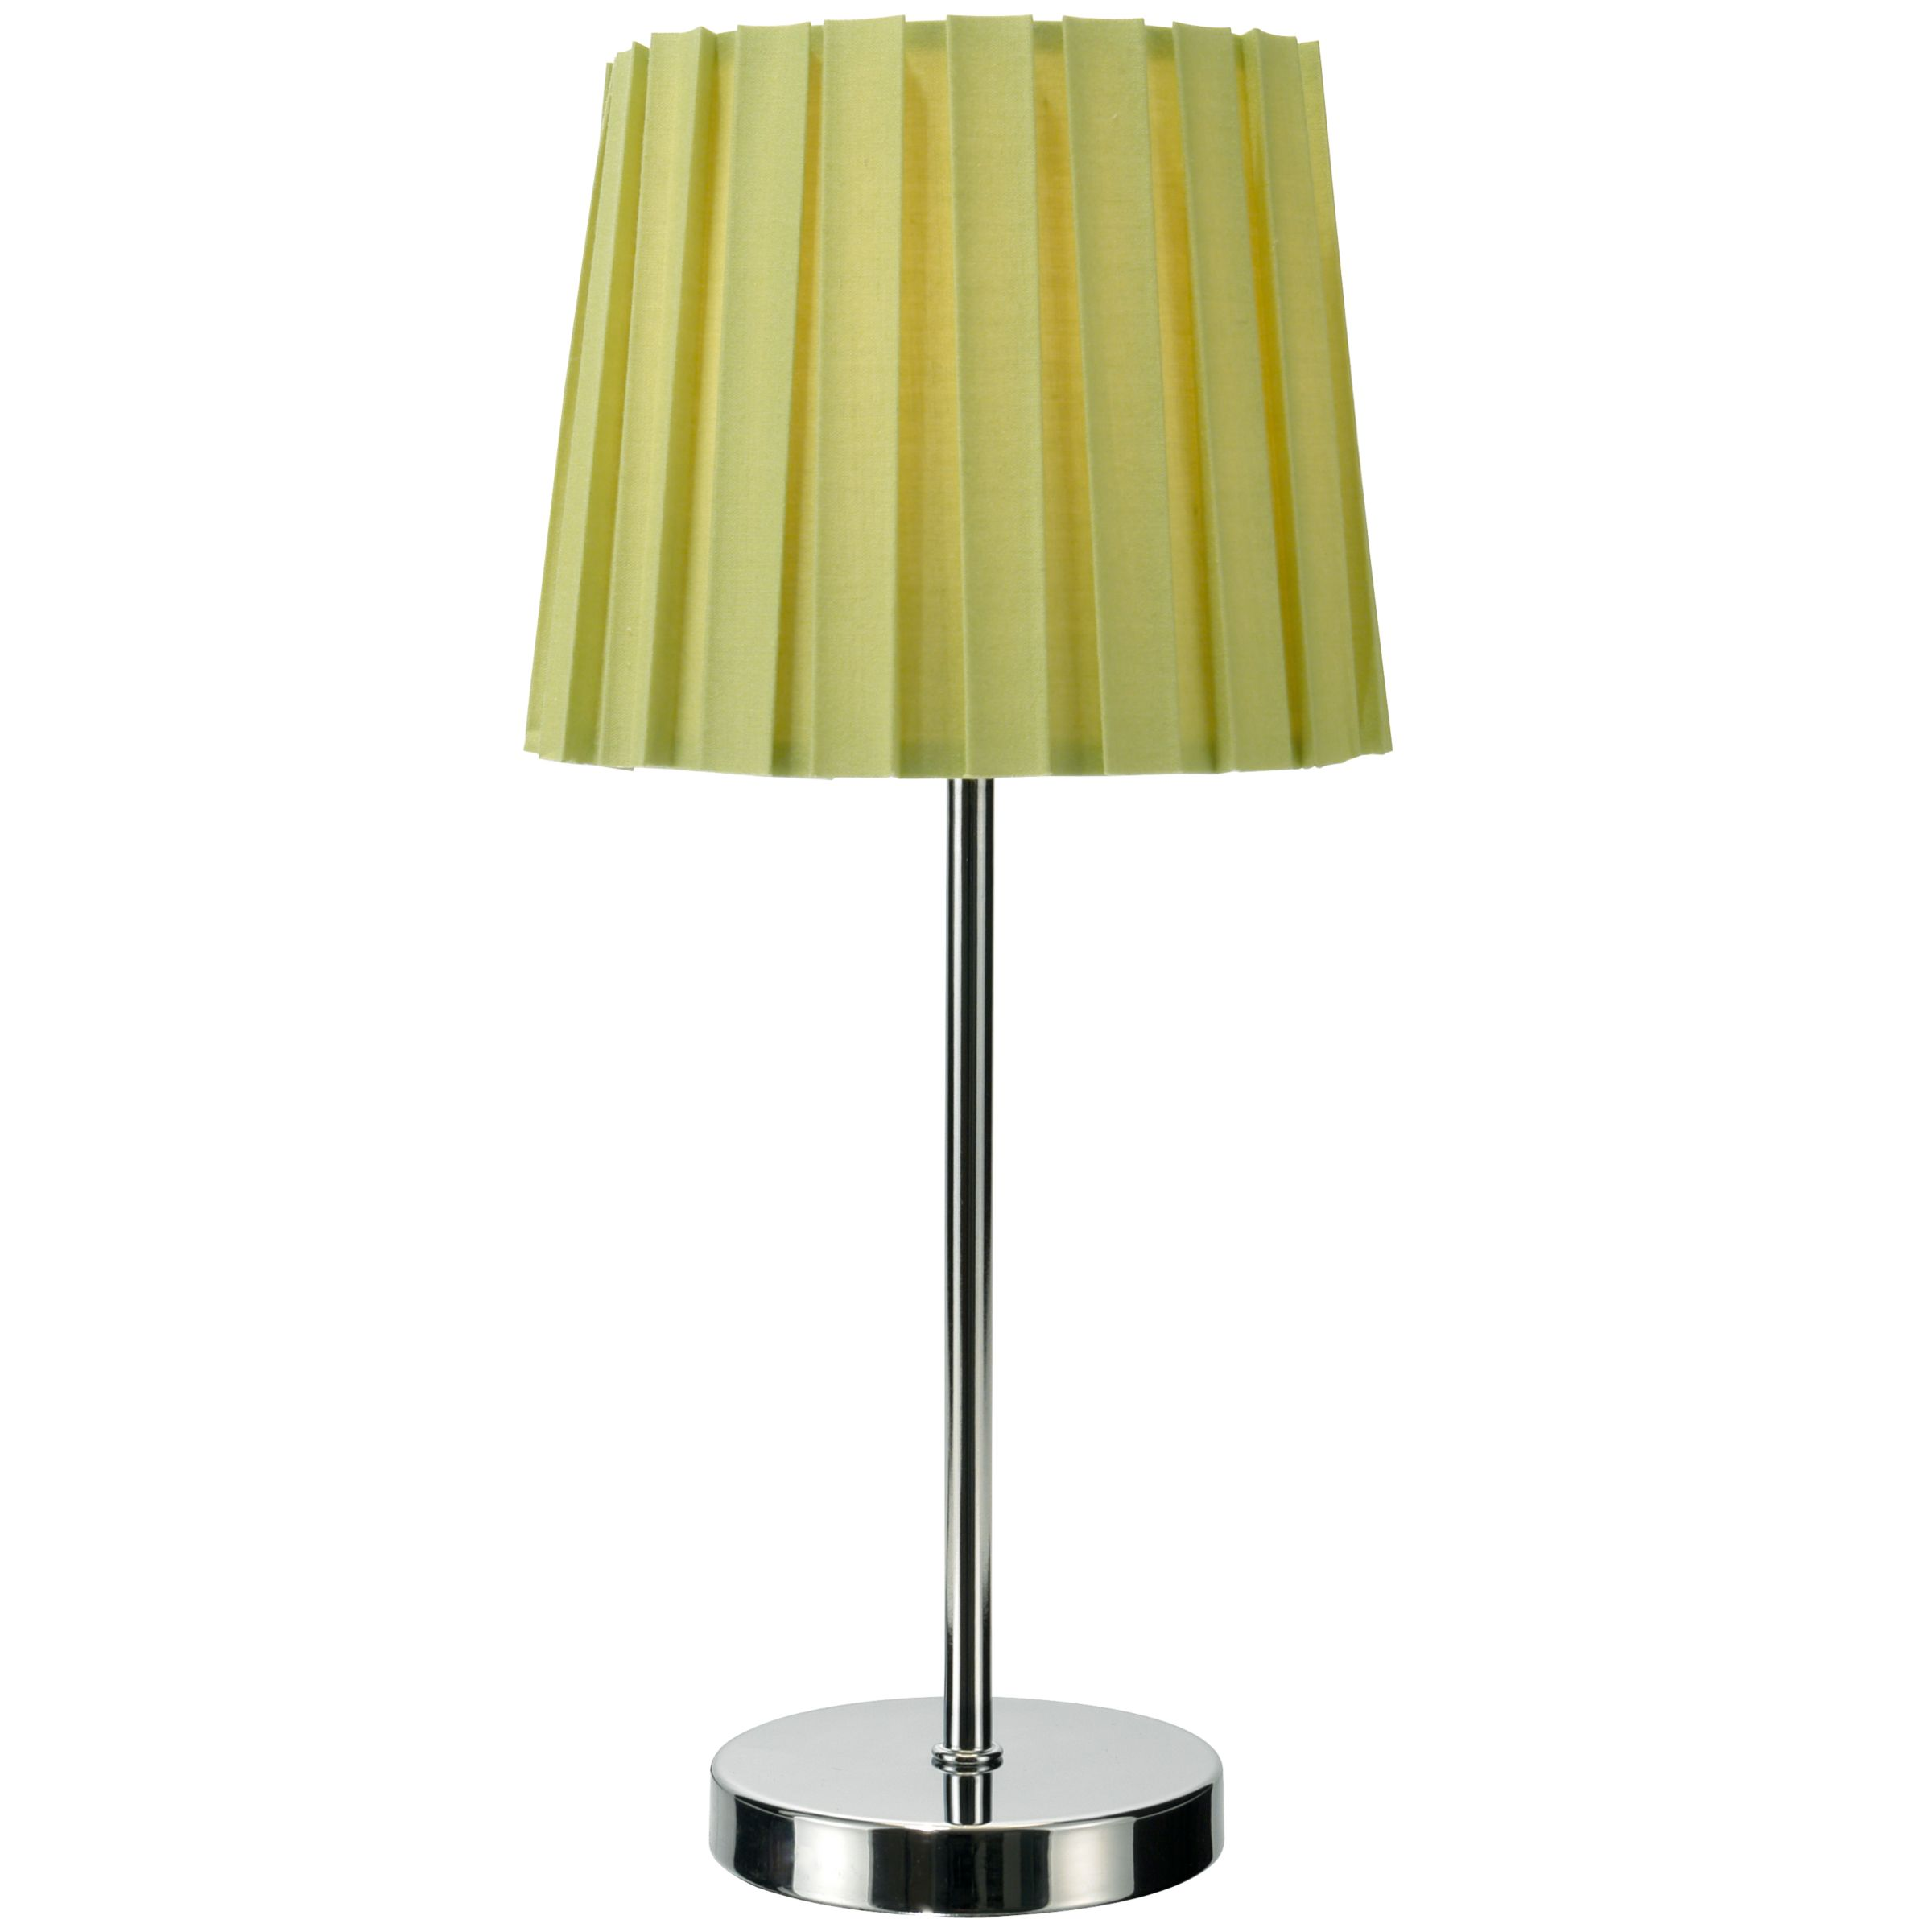 John lewis sunita table lamp green review compare for Table lamp shades john lewis